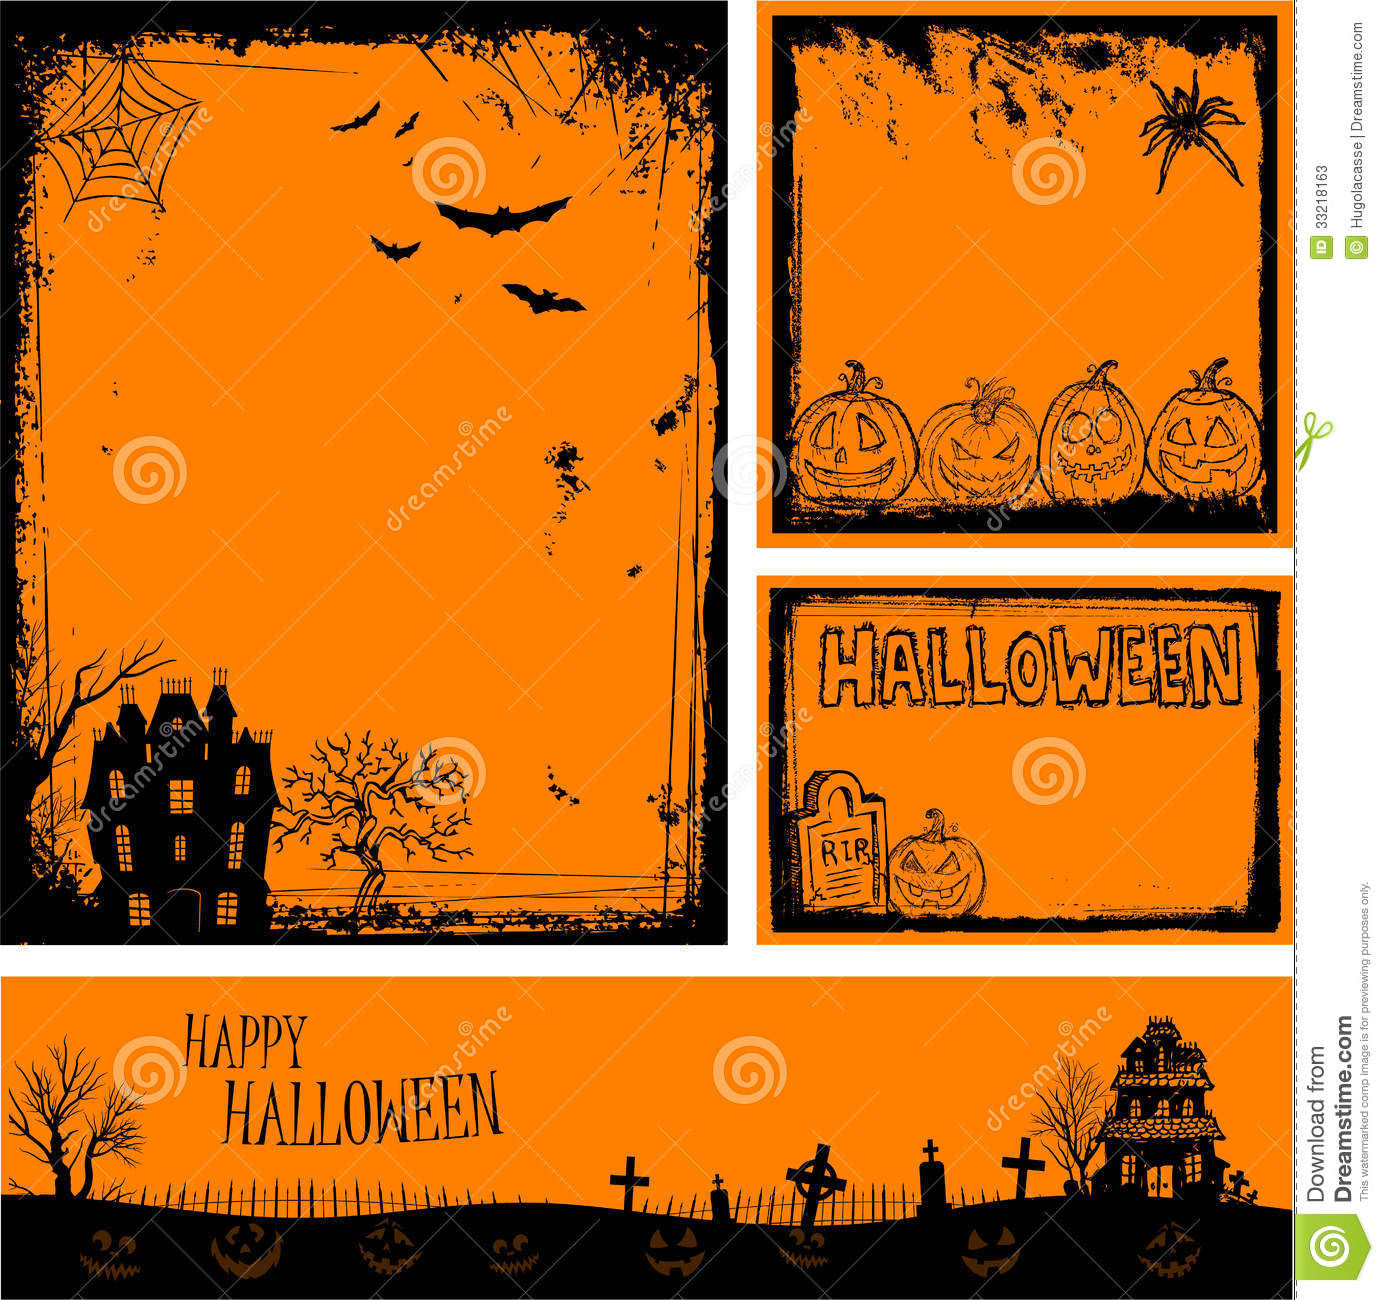 Halloween Party Invitation Cards for great invitation sample